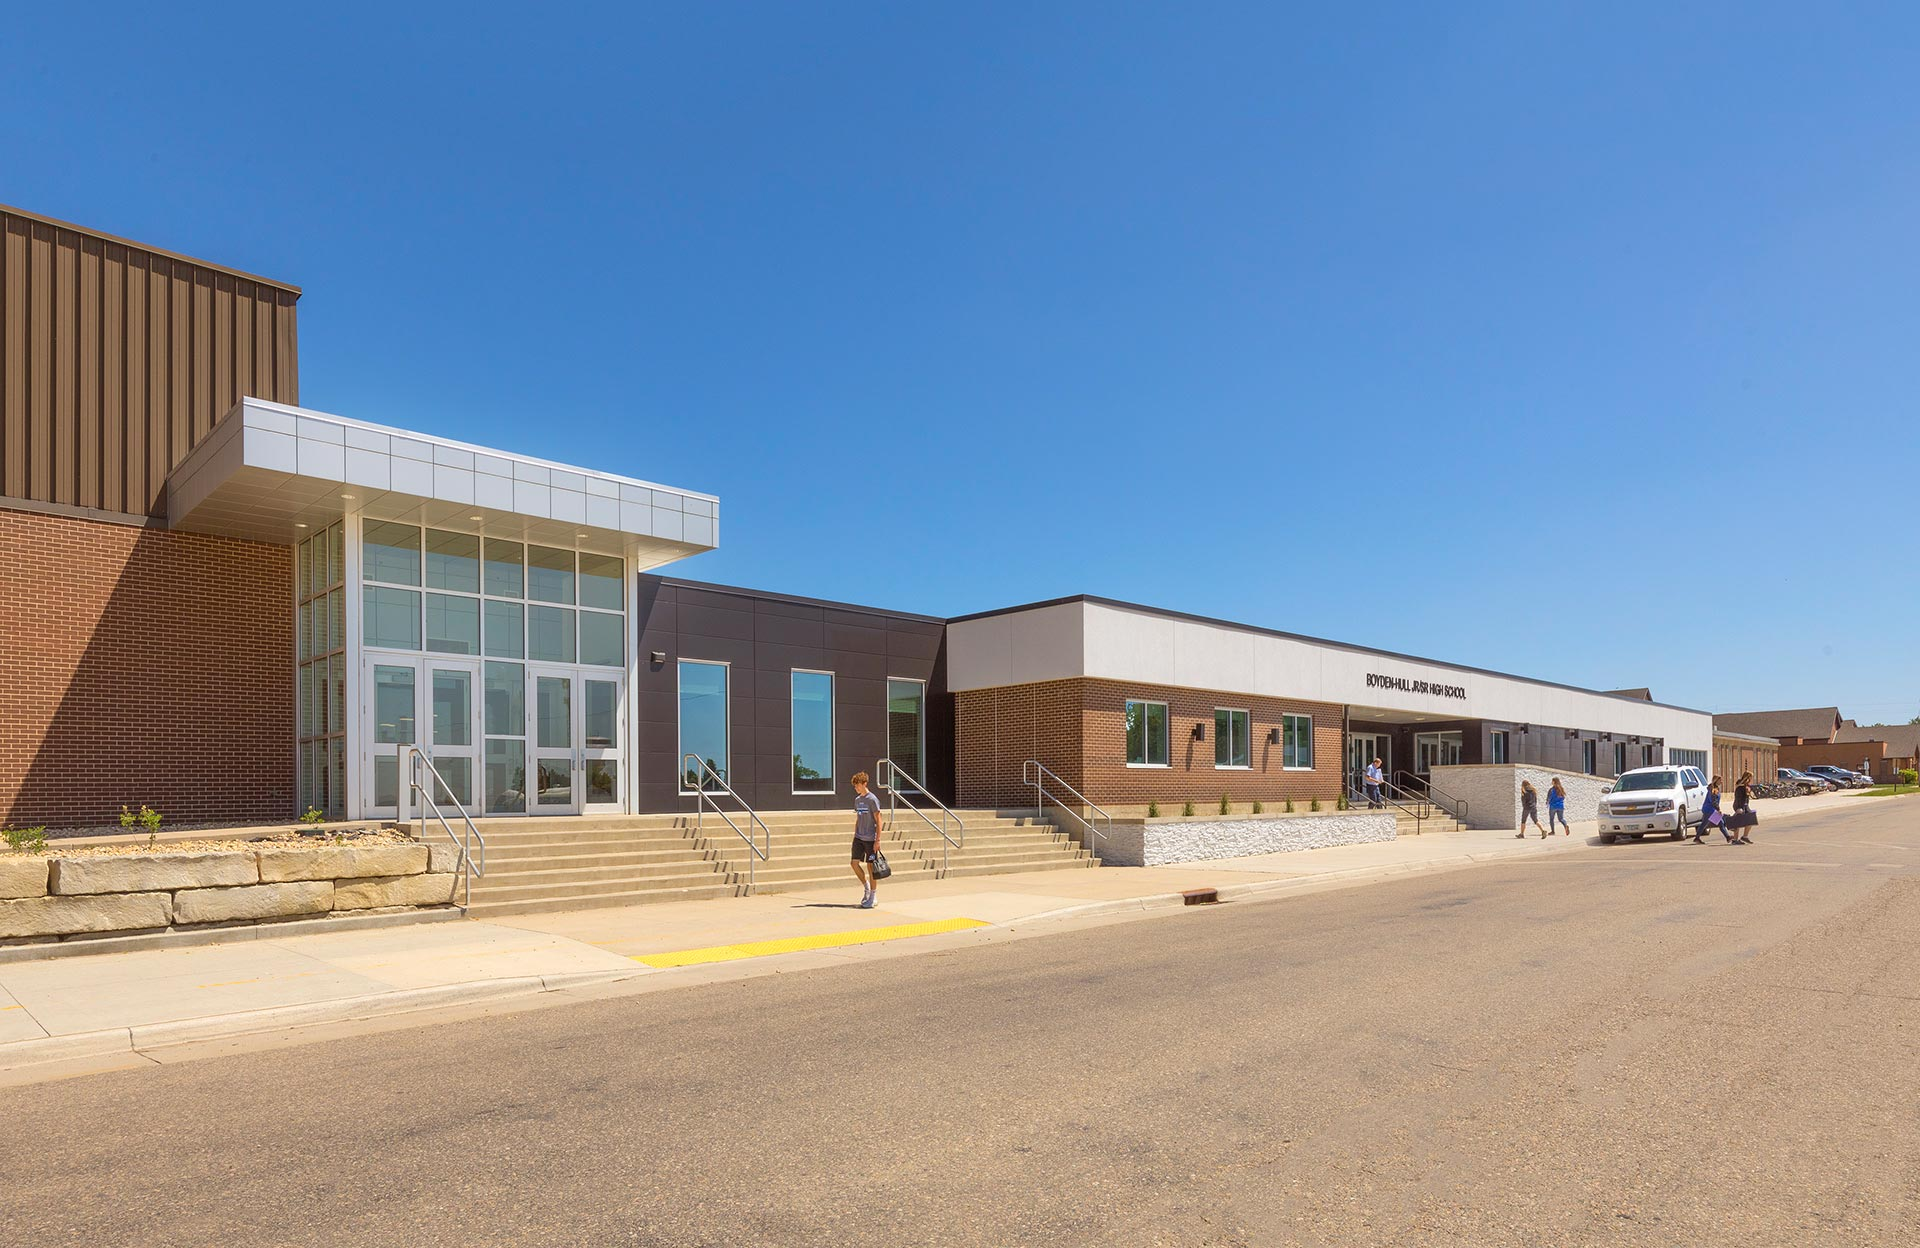 cmba-projects-boyden-hull-1